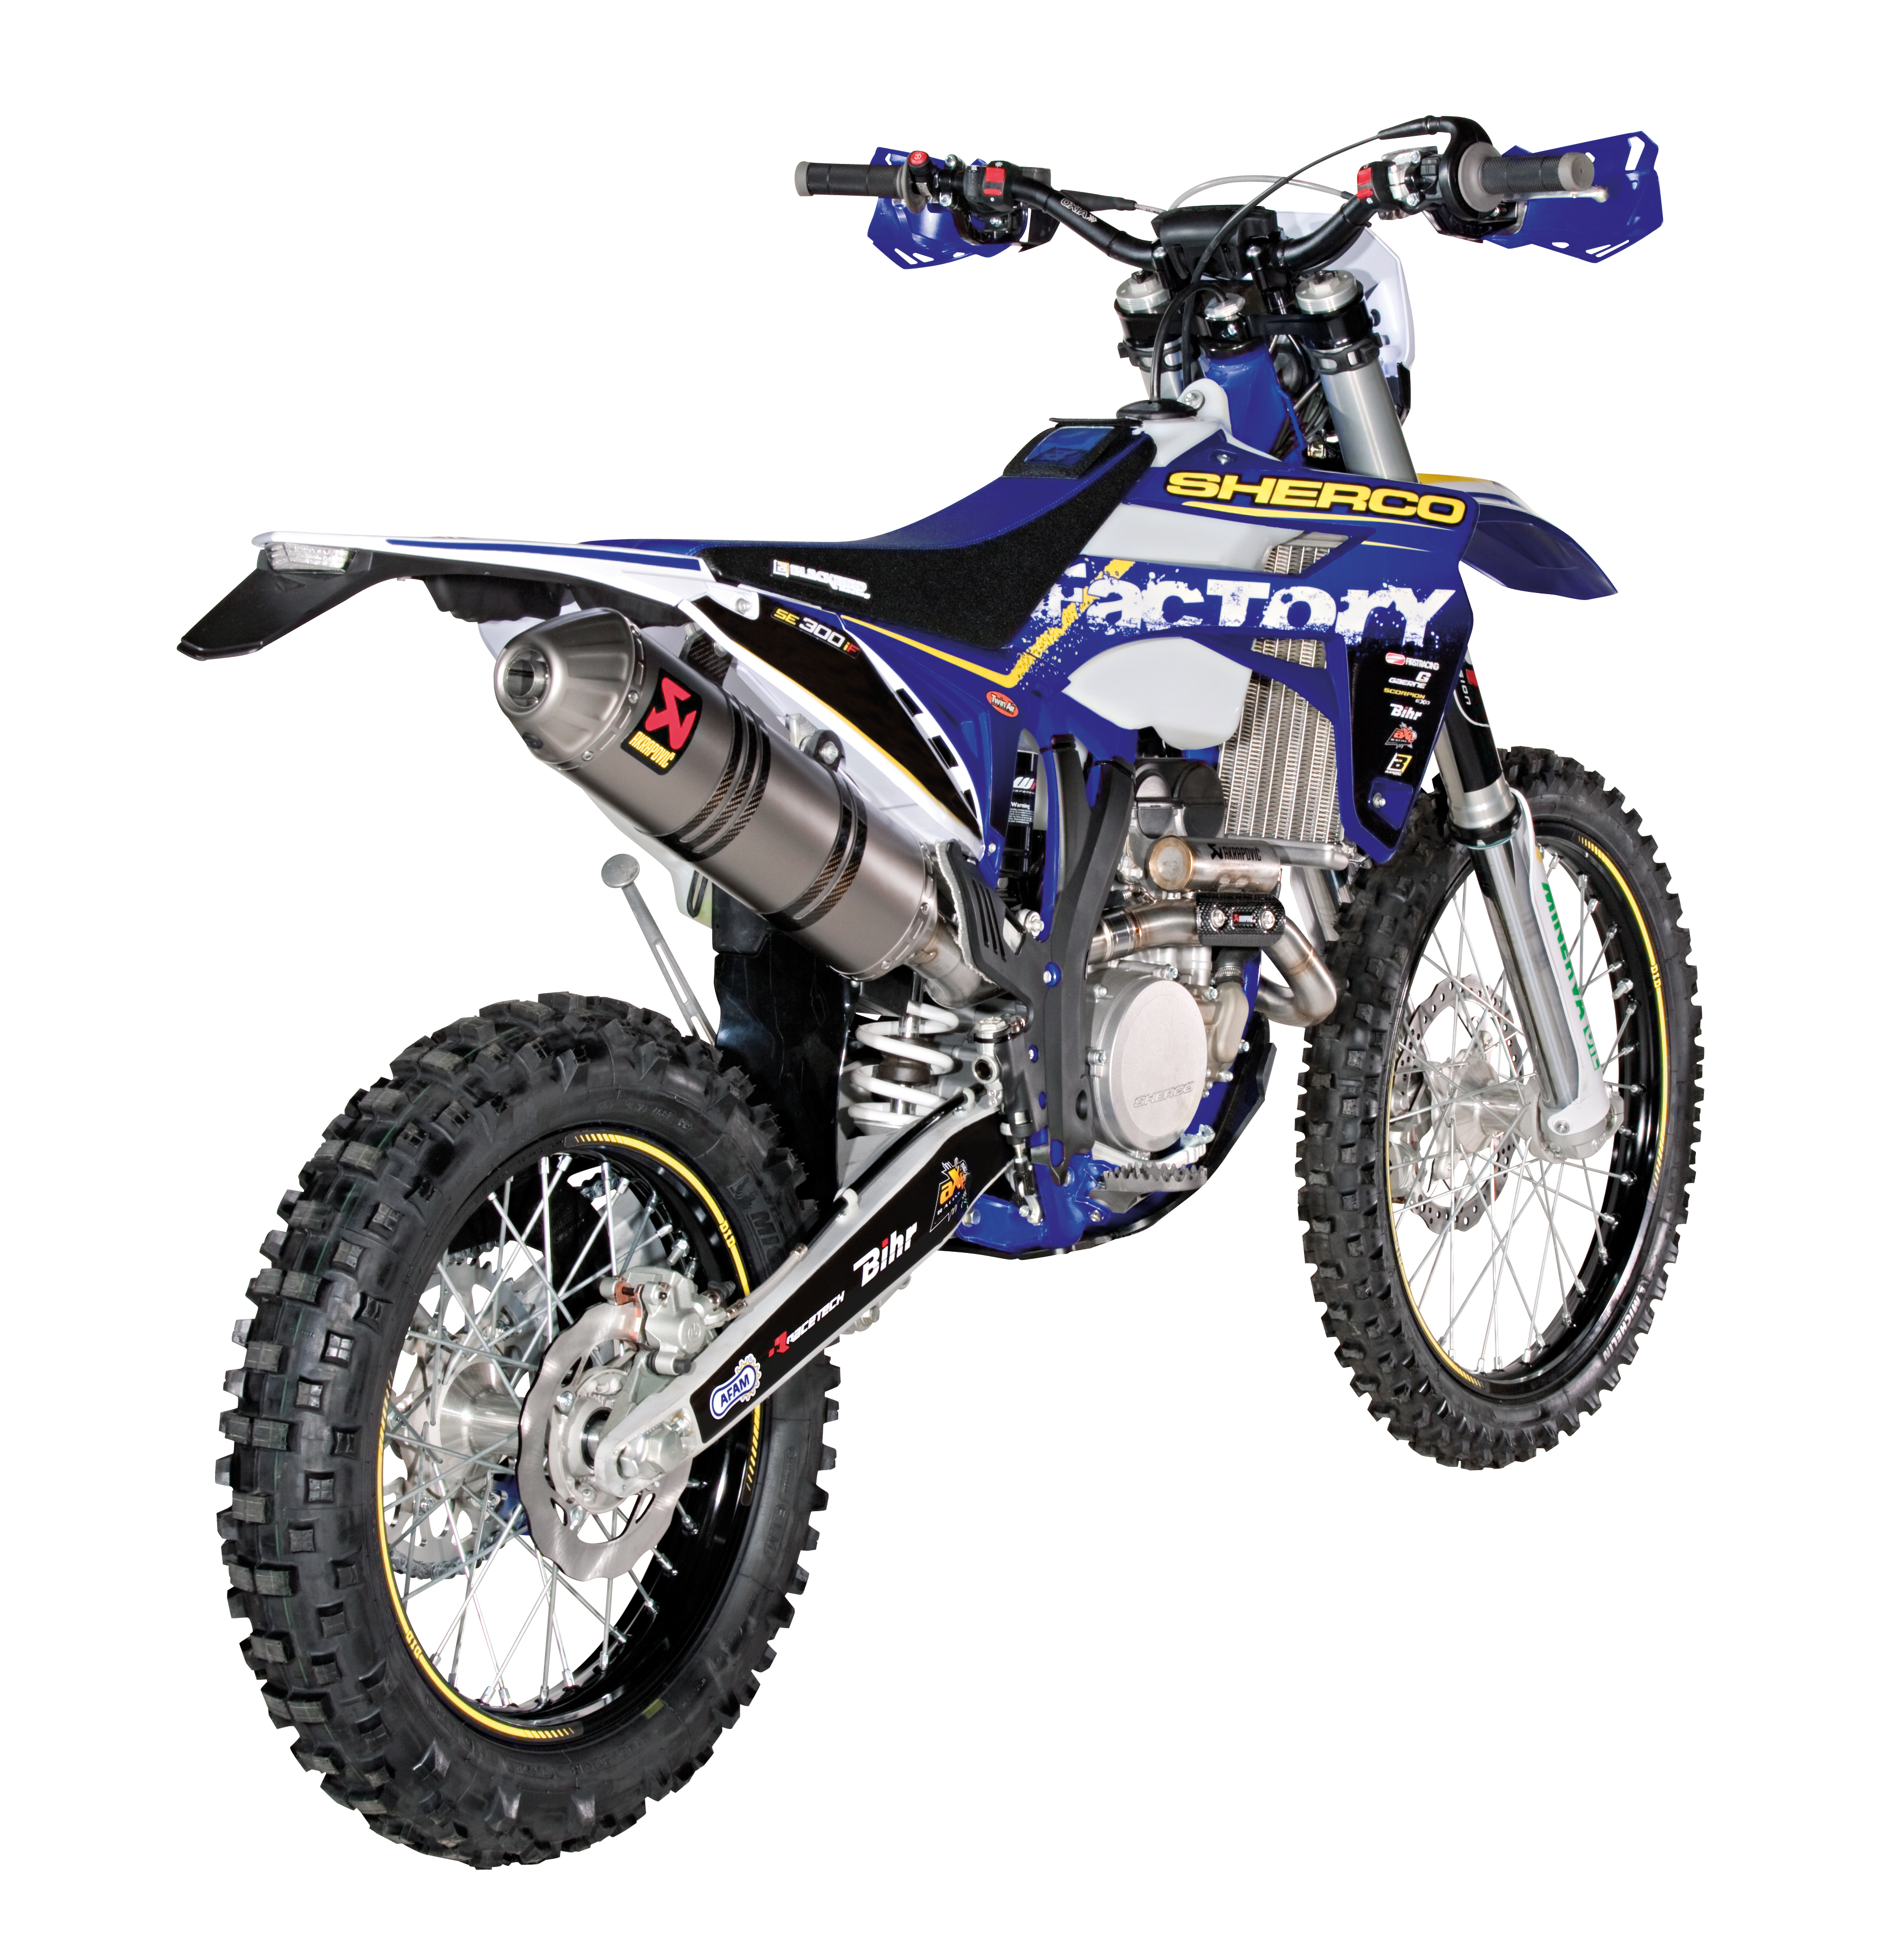 Sherco 125cc Enduro Shark Replica 2007 images #124668